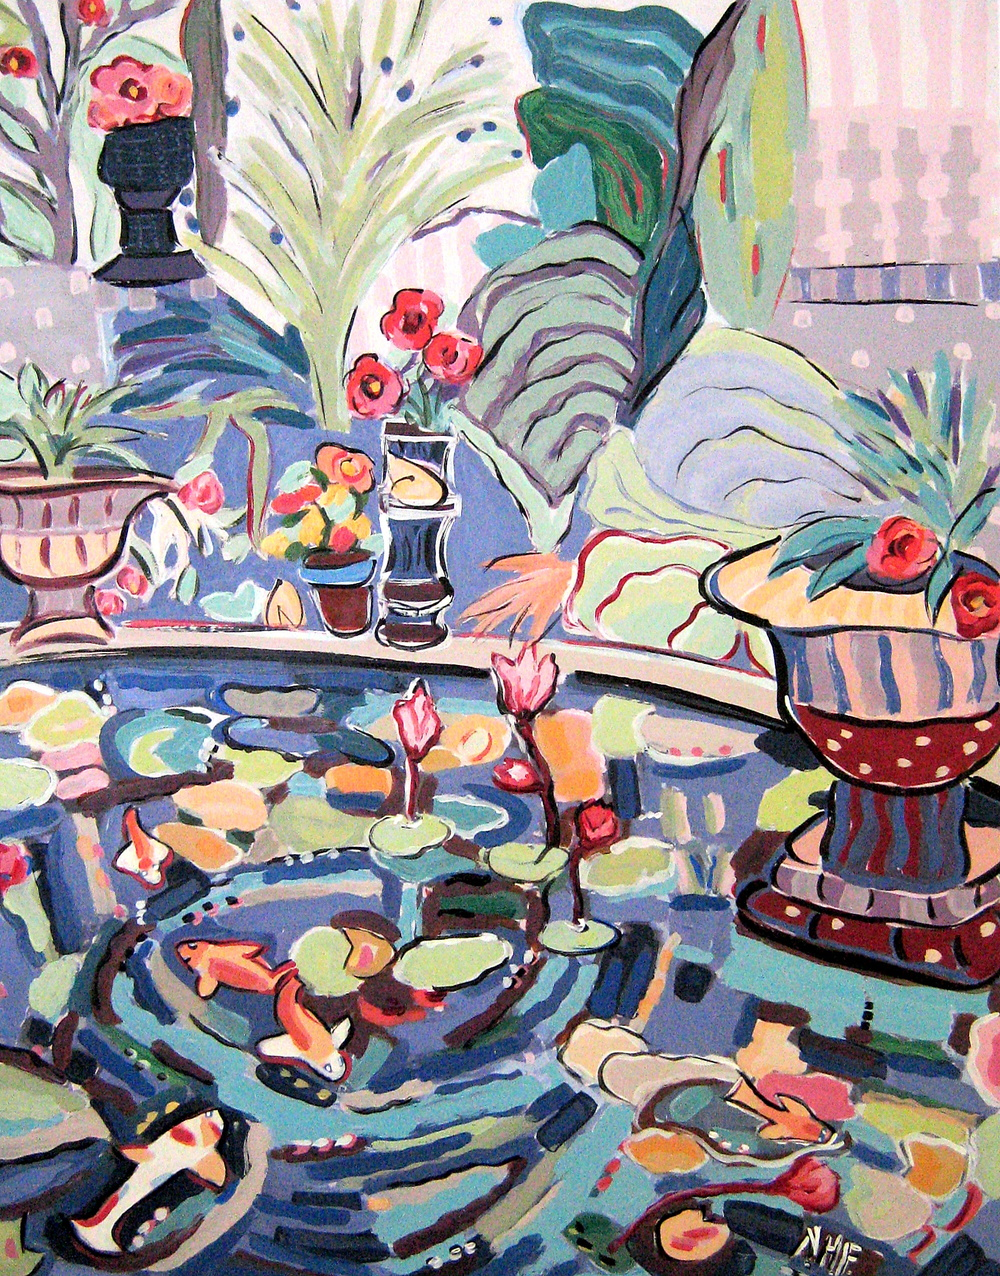 Stone Urns by the Lily Pond 2 , acrylic on mounted board, 18x15, 22x20 matted, $775